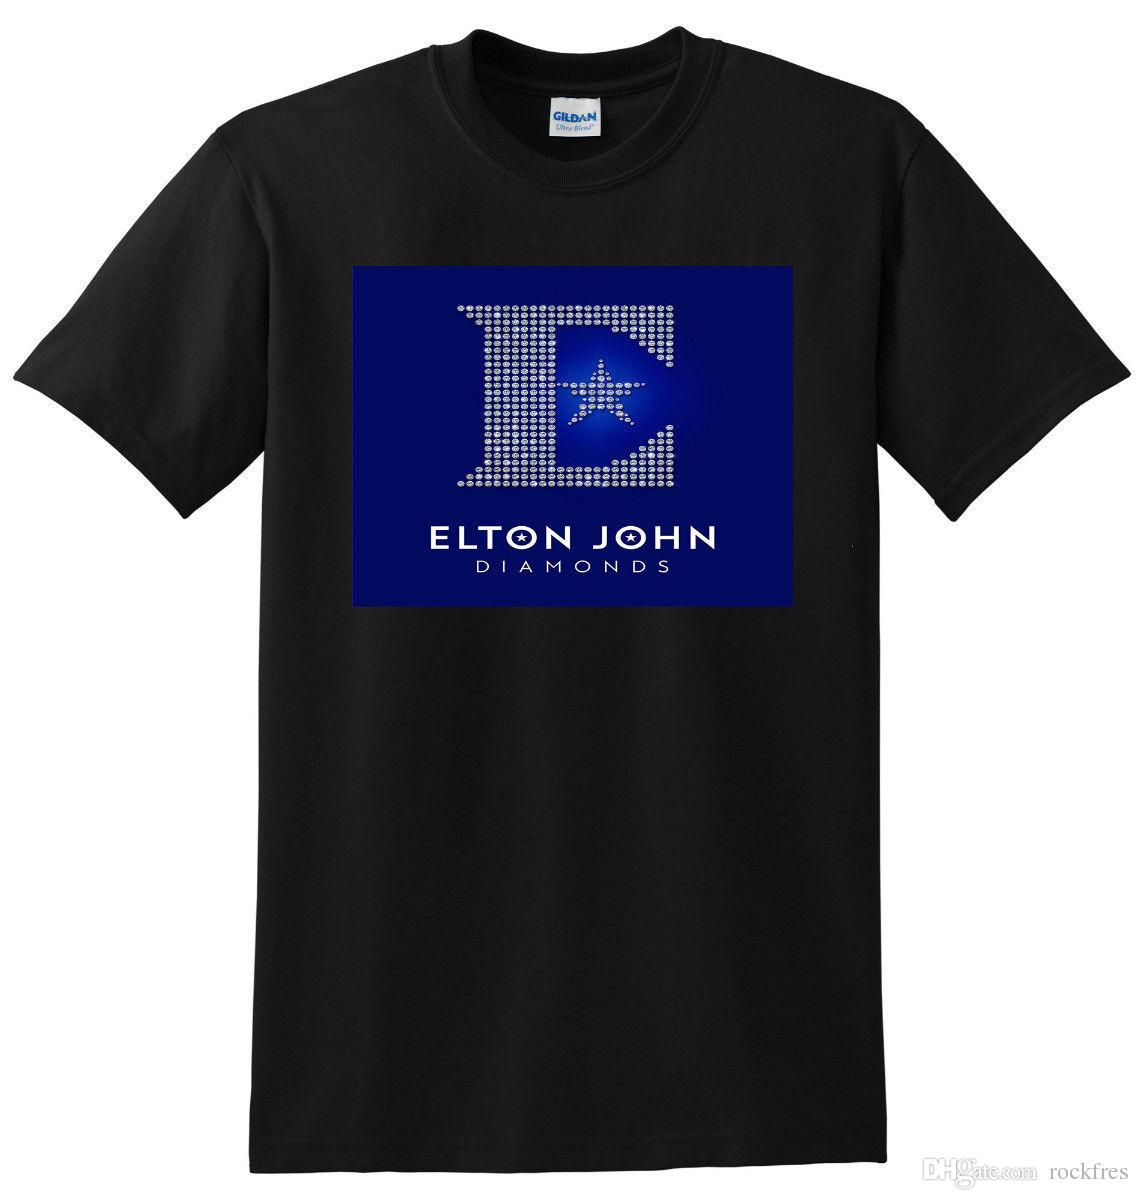 84ed8d4f1af ELTON JOHN T SHIRT Diamonds Vinyl Cd Cover Tee SMALL MEDIUM LARGE Or XL T  Shirt Shopping Awesome Tee Shirts From Rockfres